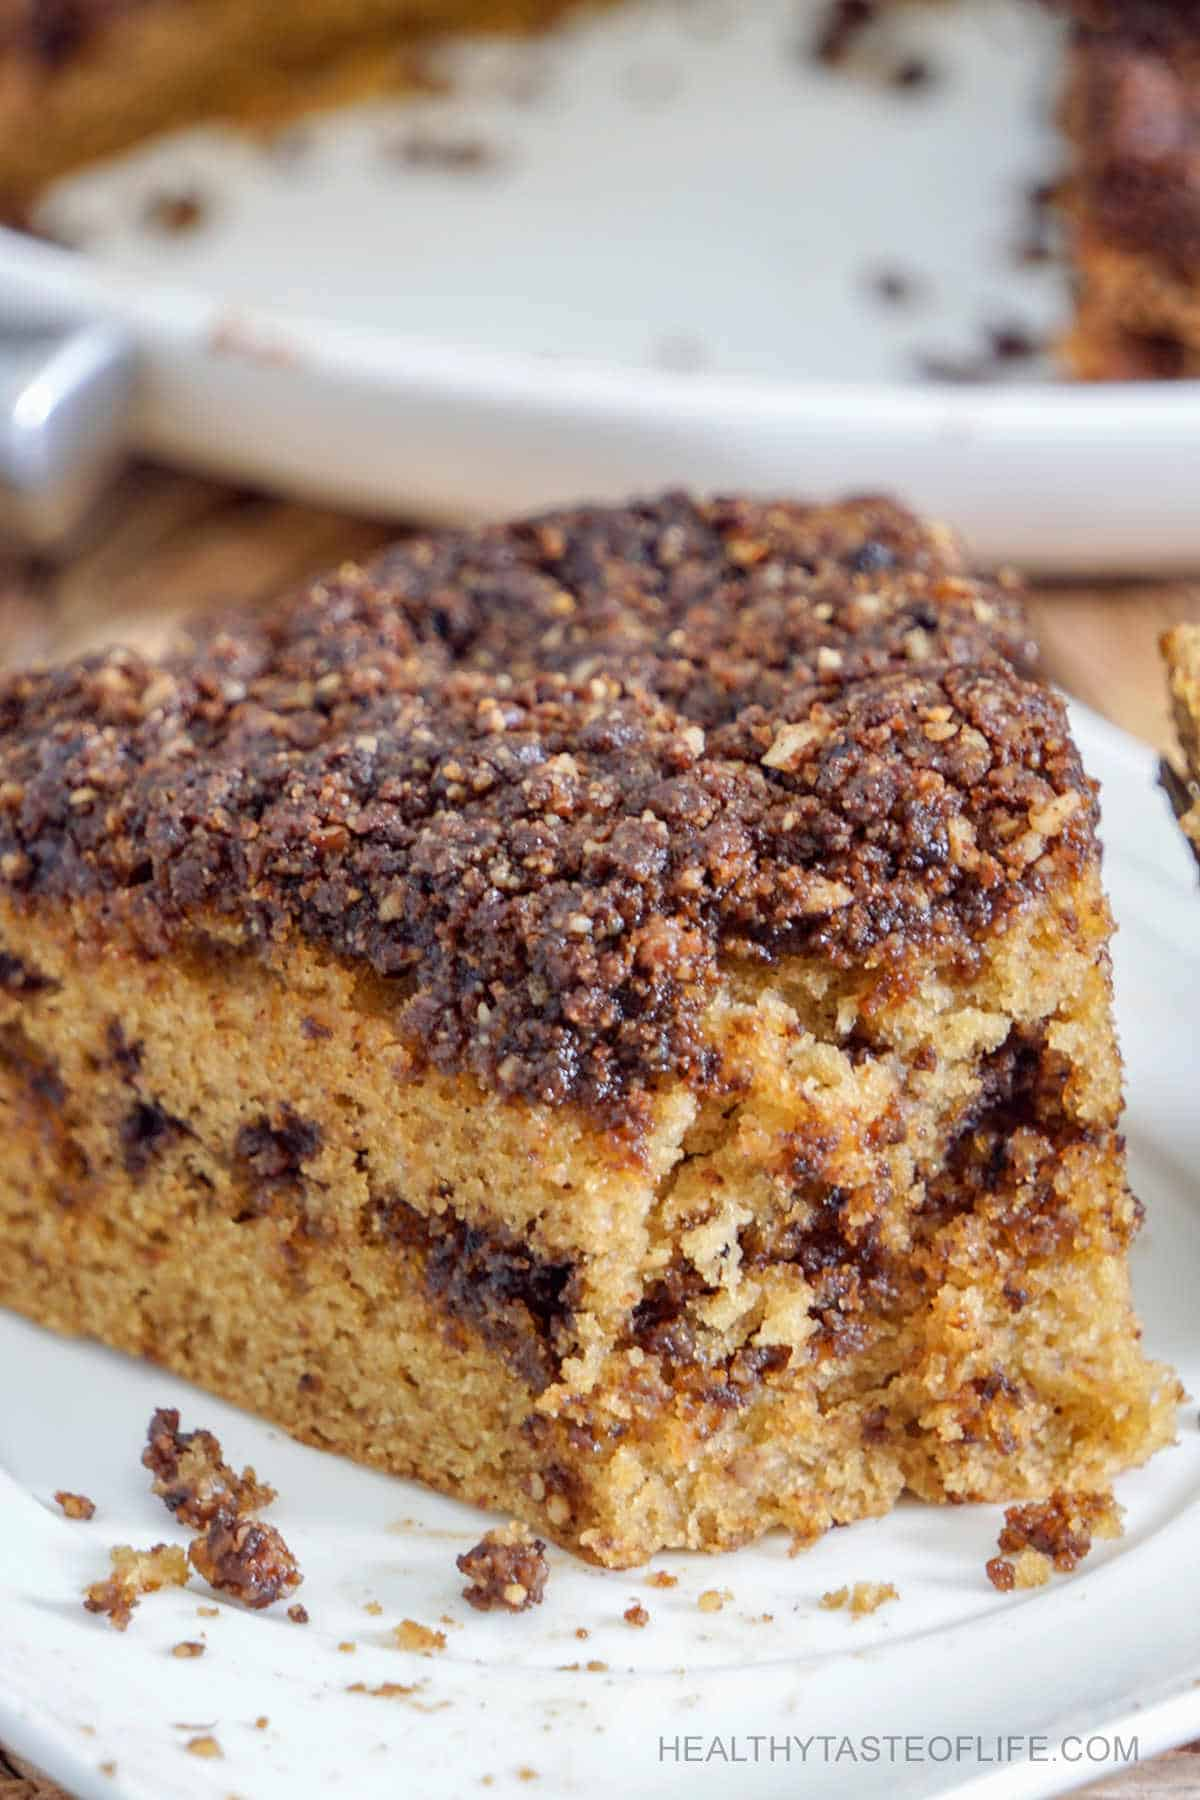 A super moist fluffy gluten free coffee cake with a layer of sweet cinnamon filling baked in the middle and topped with a cinnamon, coffee sweet crumb topping / streusel. No cake mixes, this gluten free coffee cake  is dairy free, no refined sugar, made from scratch and you need about 1 hour from start to finish. #glutenfreecoffeecake #coffeecake #glutenfreedessert #cinnamoncake #dairyfreedessert